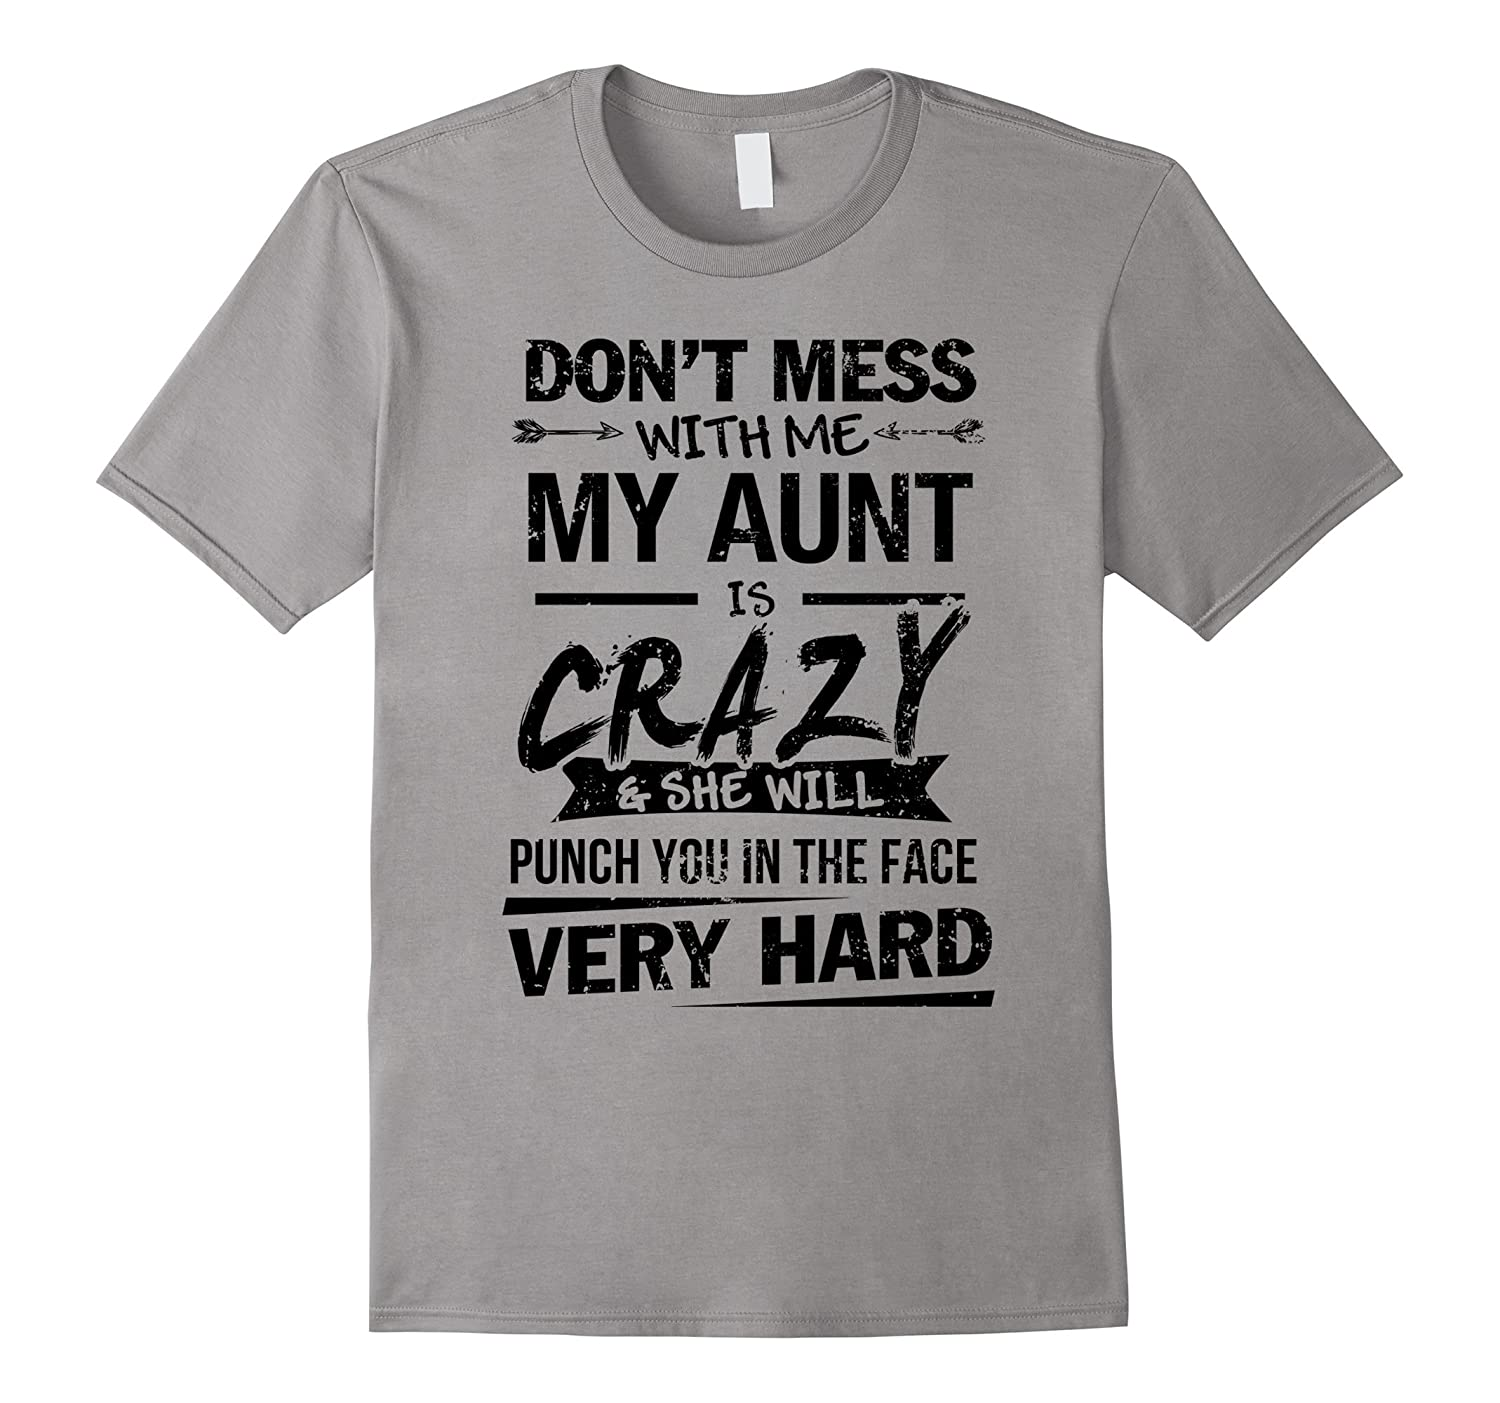 bc0bd8e4b2 DON'T MESS WITH ME MY AUNT IS CRAZY T SHIRT-ANZ ⋆ Anztshirt